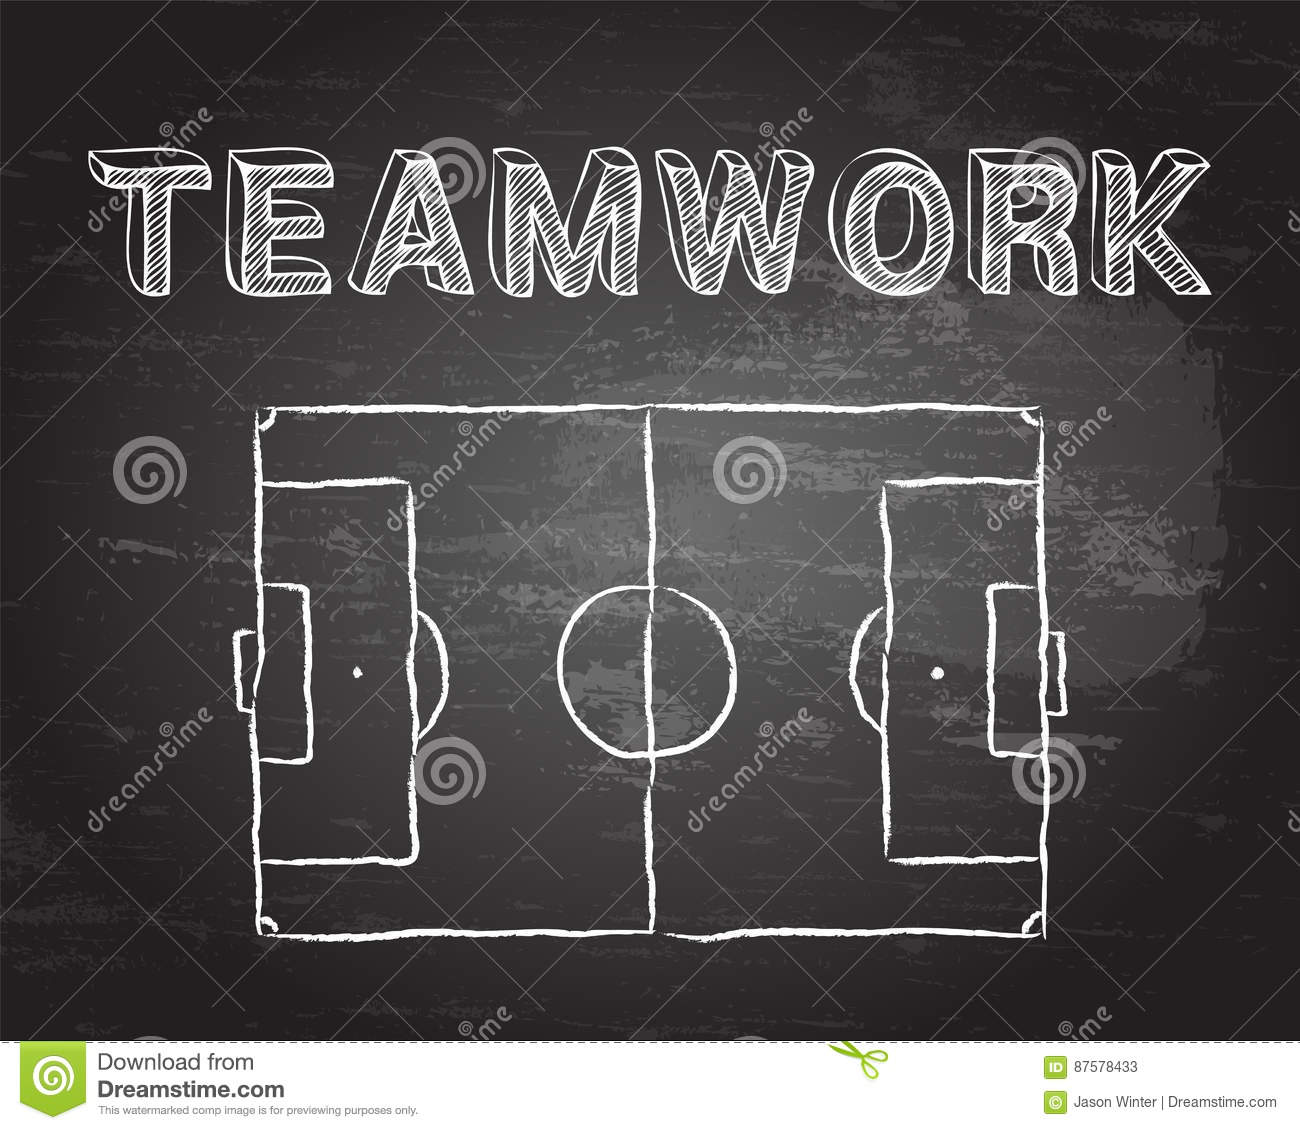 teamwork soccer pitch blackboard football diagram word 87578433 teamwork soccer pitch blackboard stock vector illustration of goal